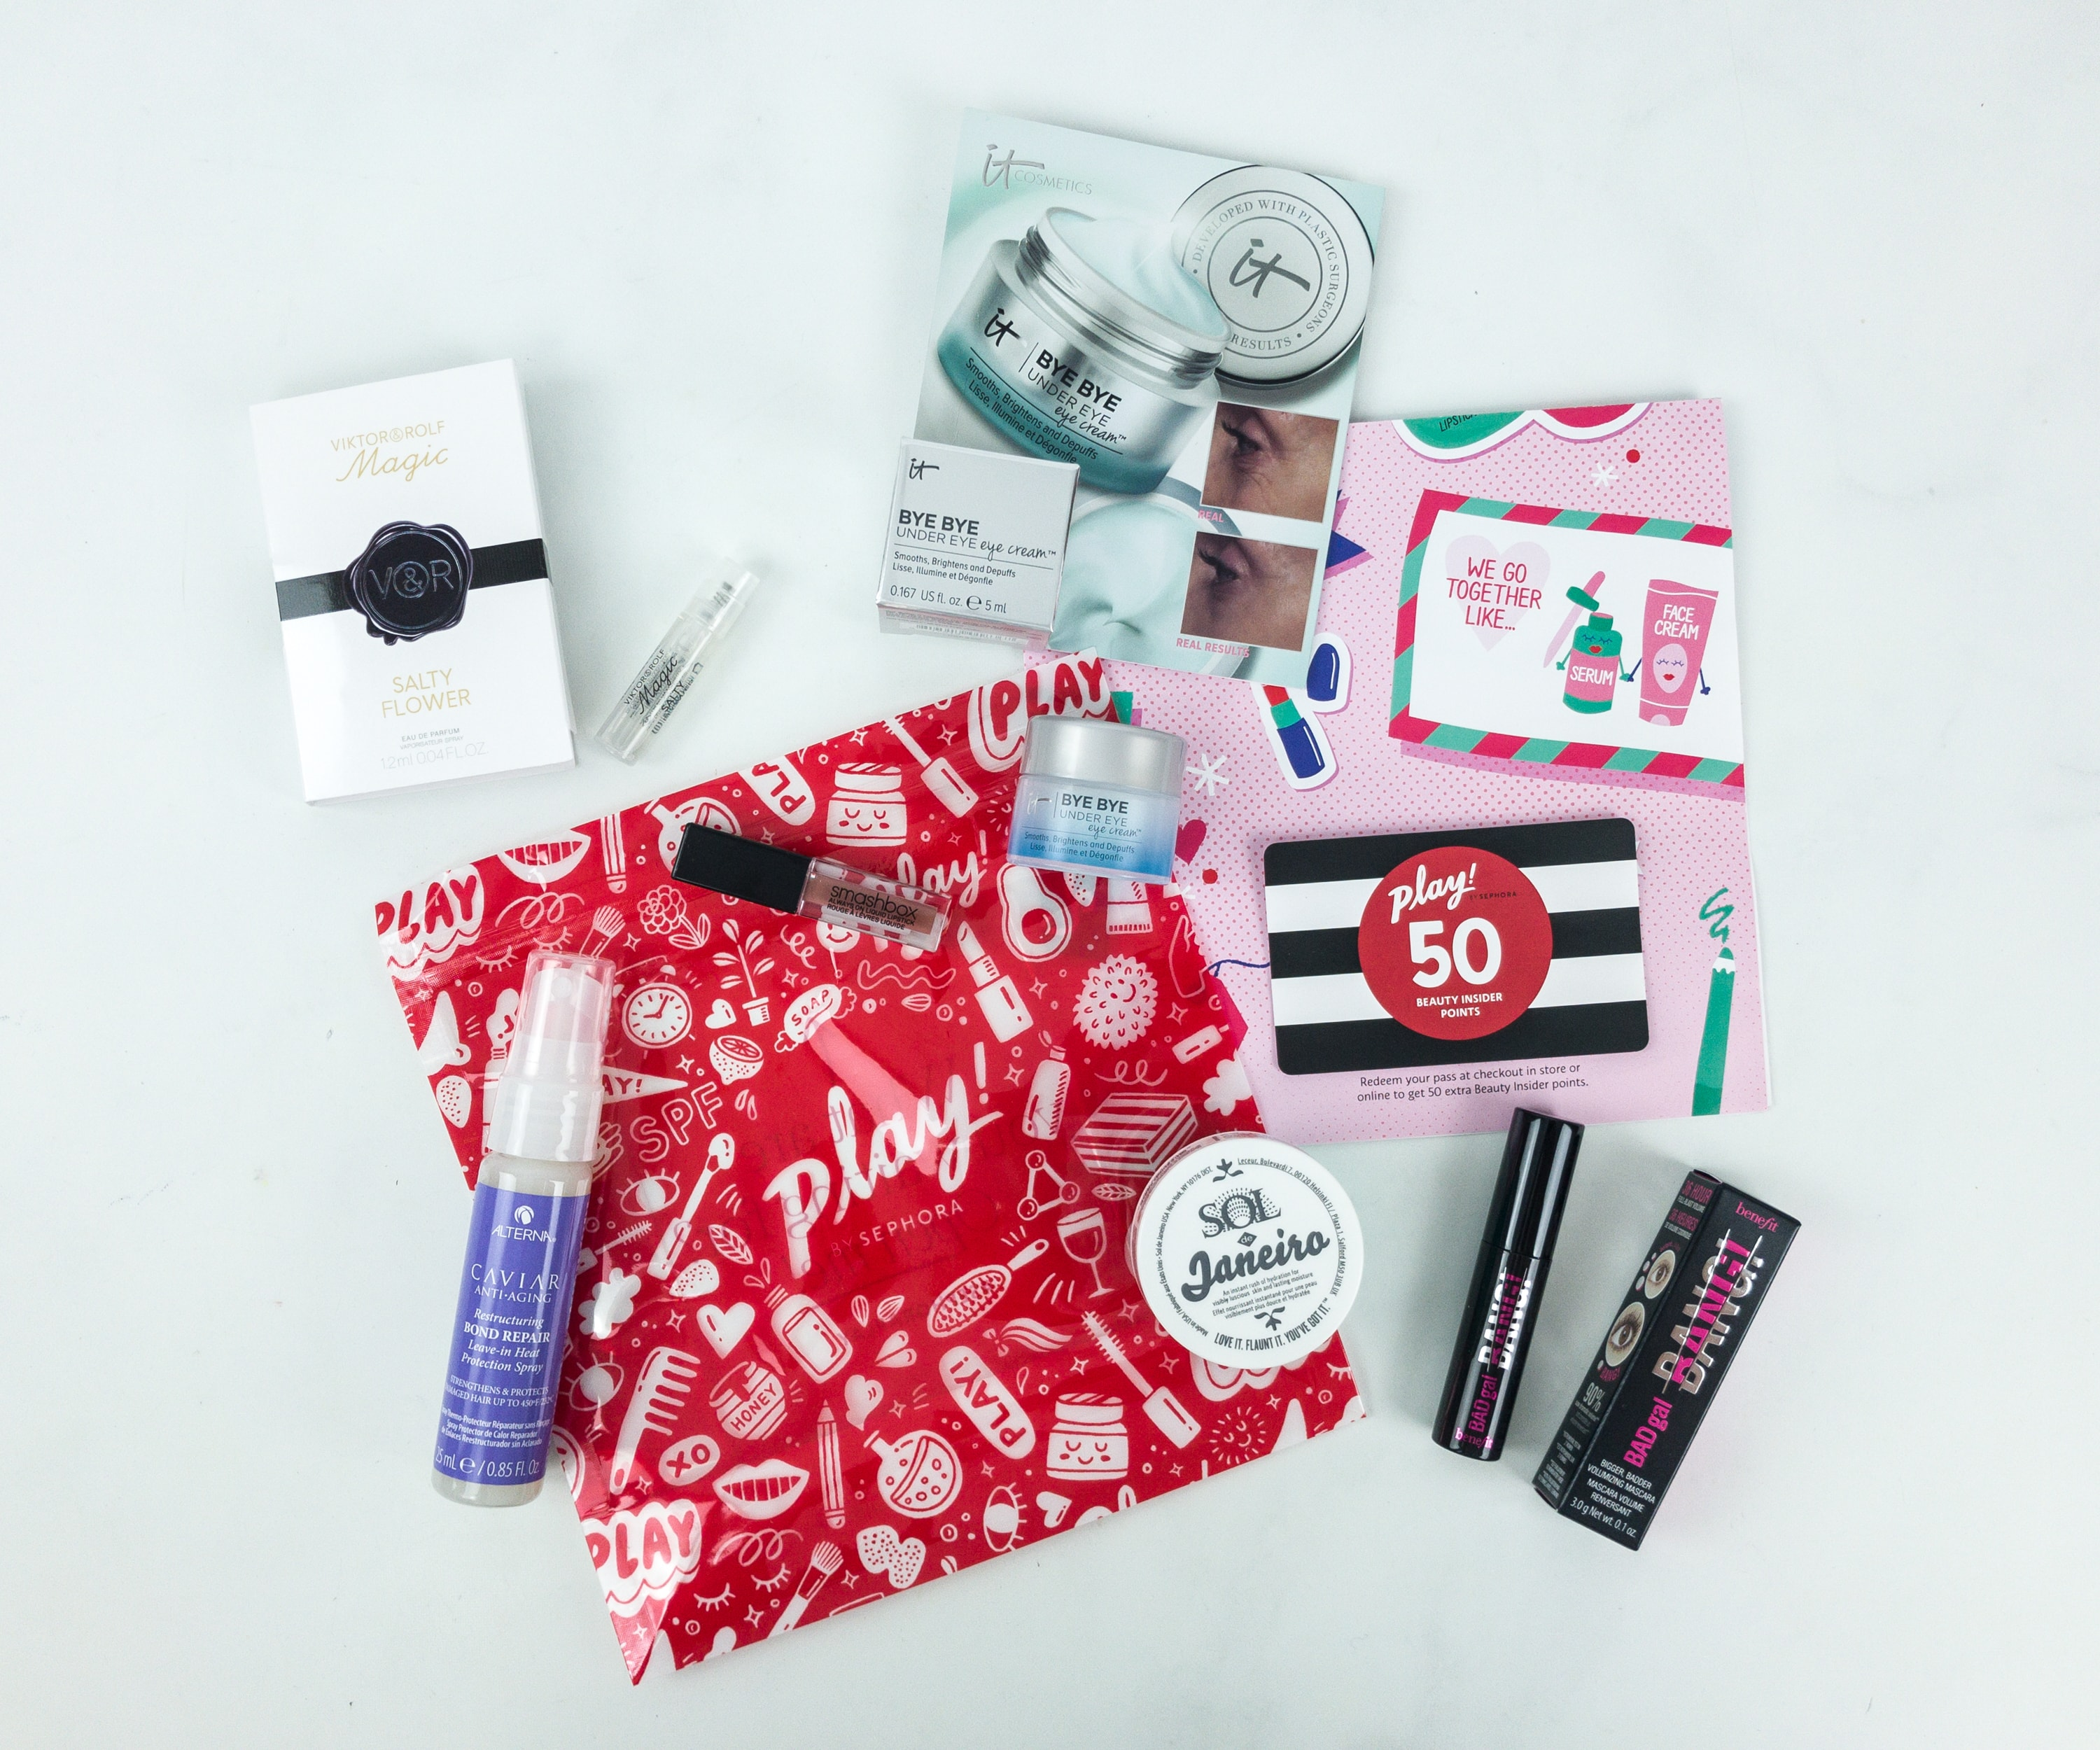 Play! by Sephora May 2019 Subscription Box Review